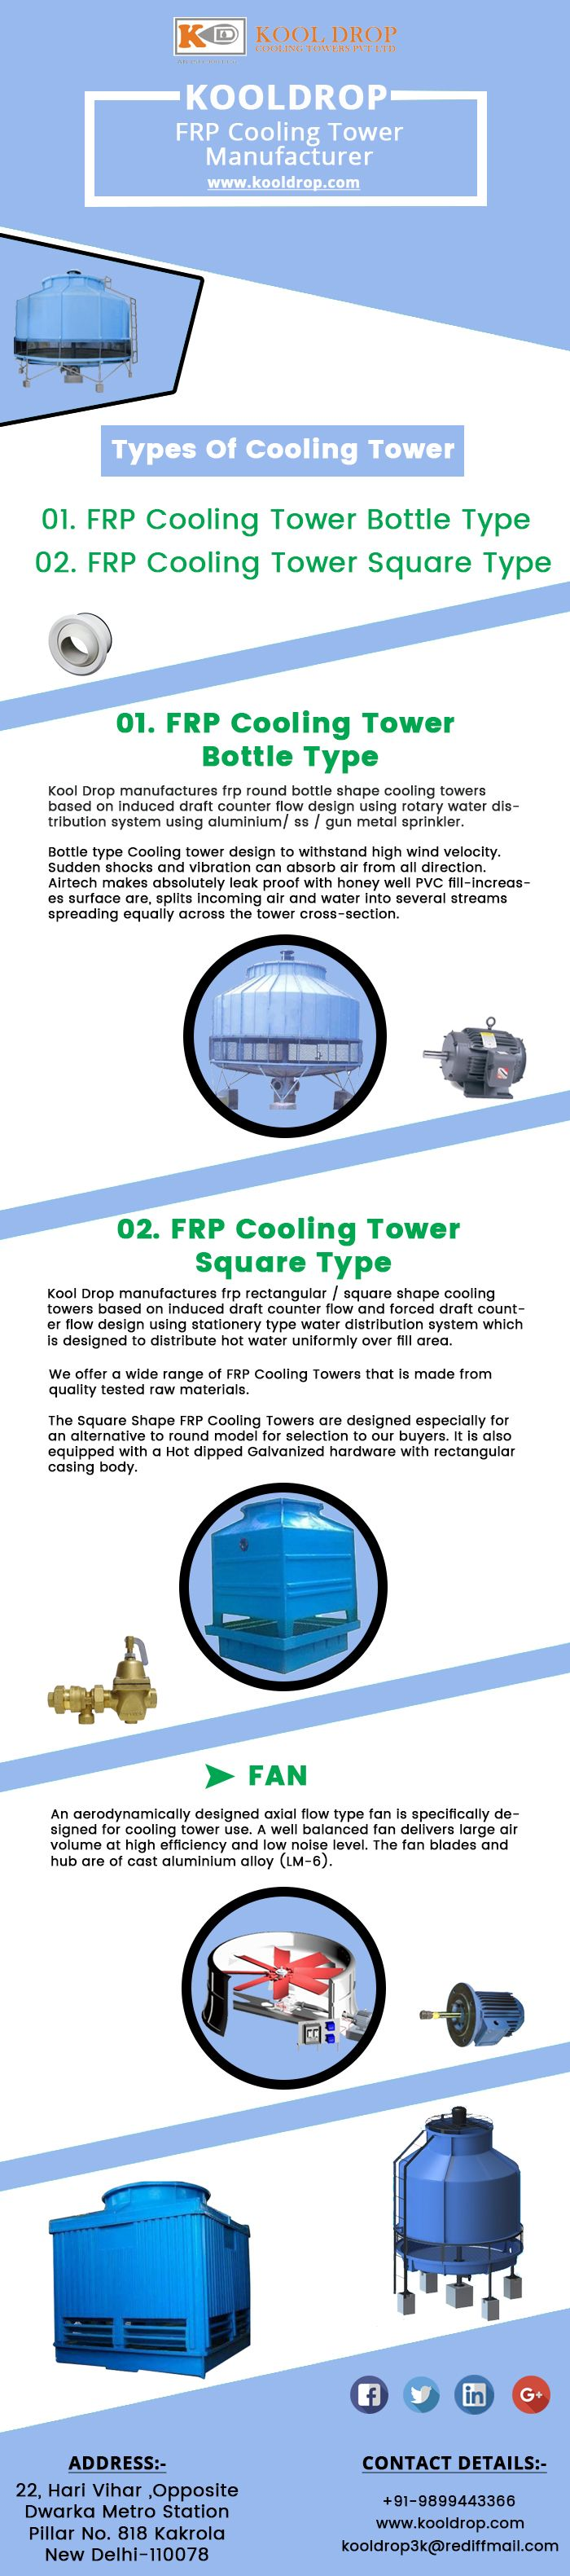 Kool Drop Cooling Towers Pvt Ltd Are Leading Manufacturer And